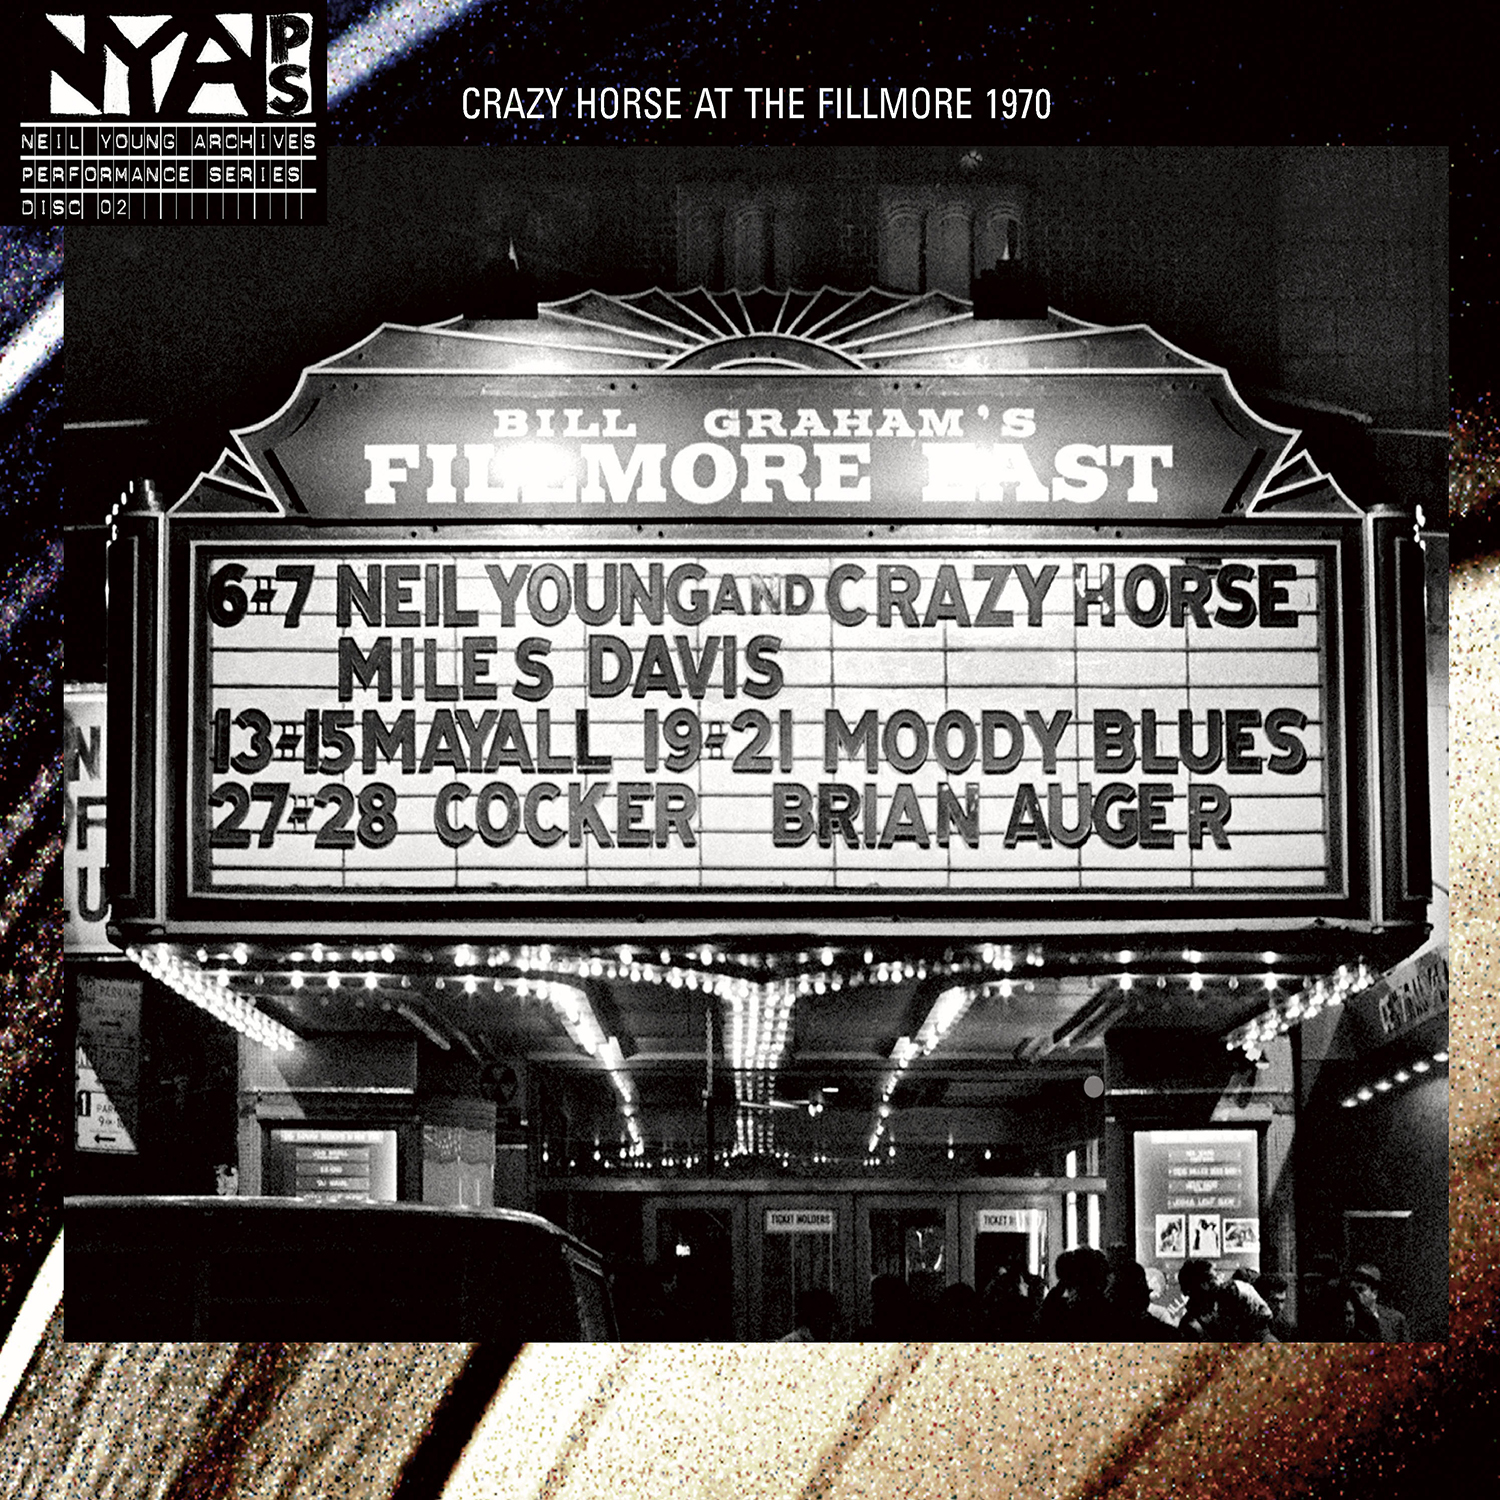 Neil Young And Crazy Horse, Live at the Fillmore